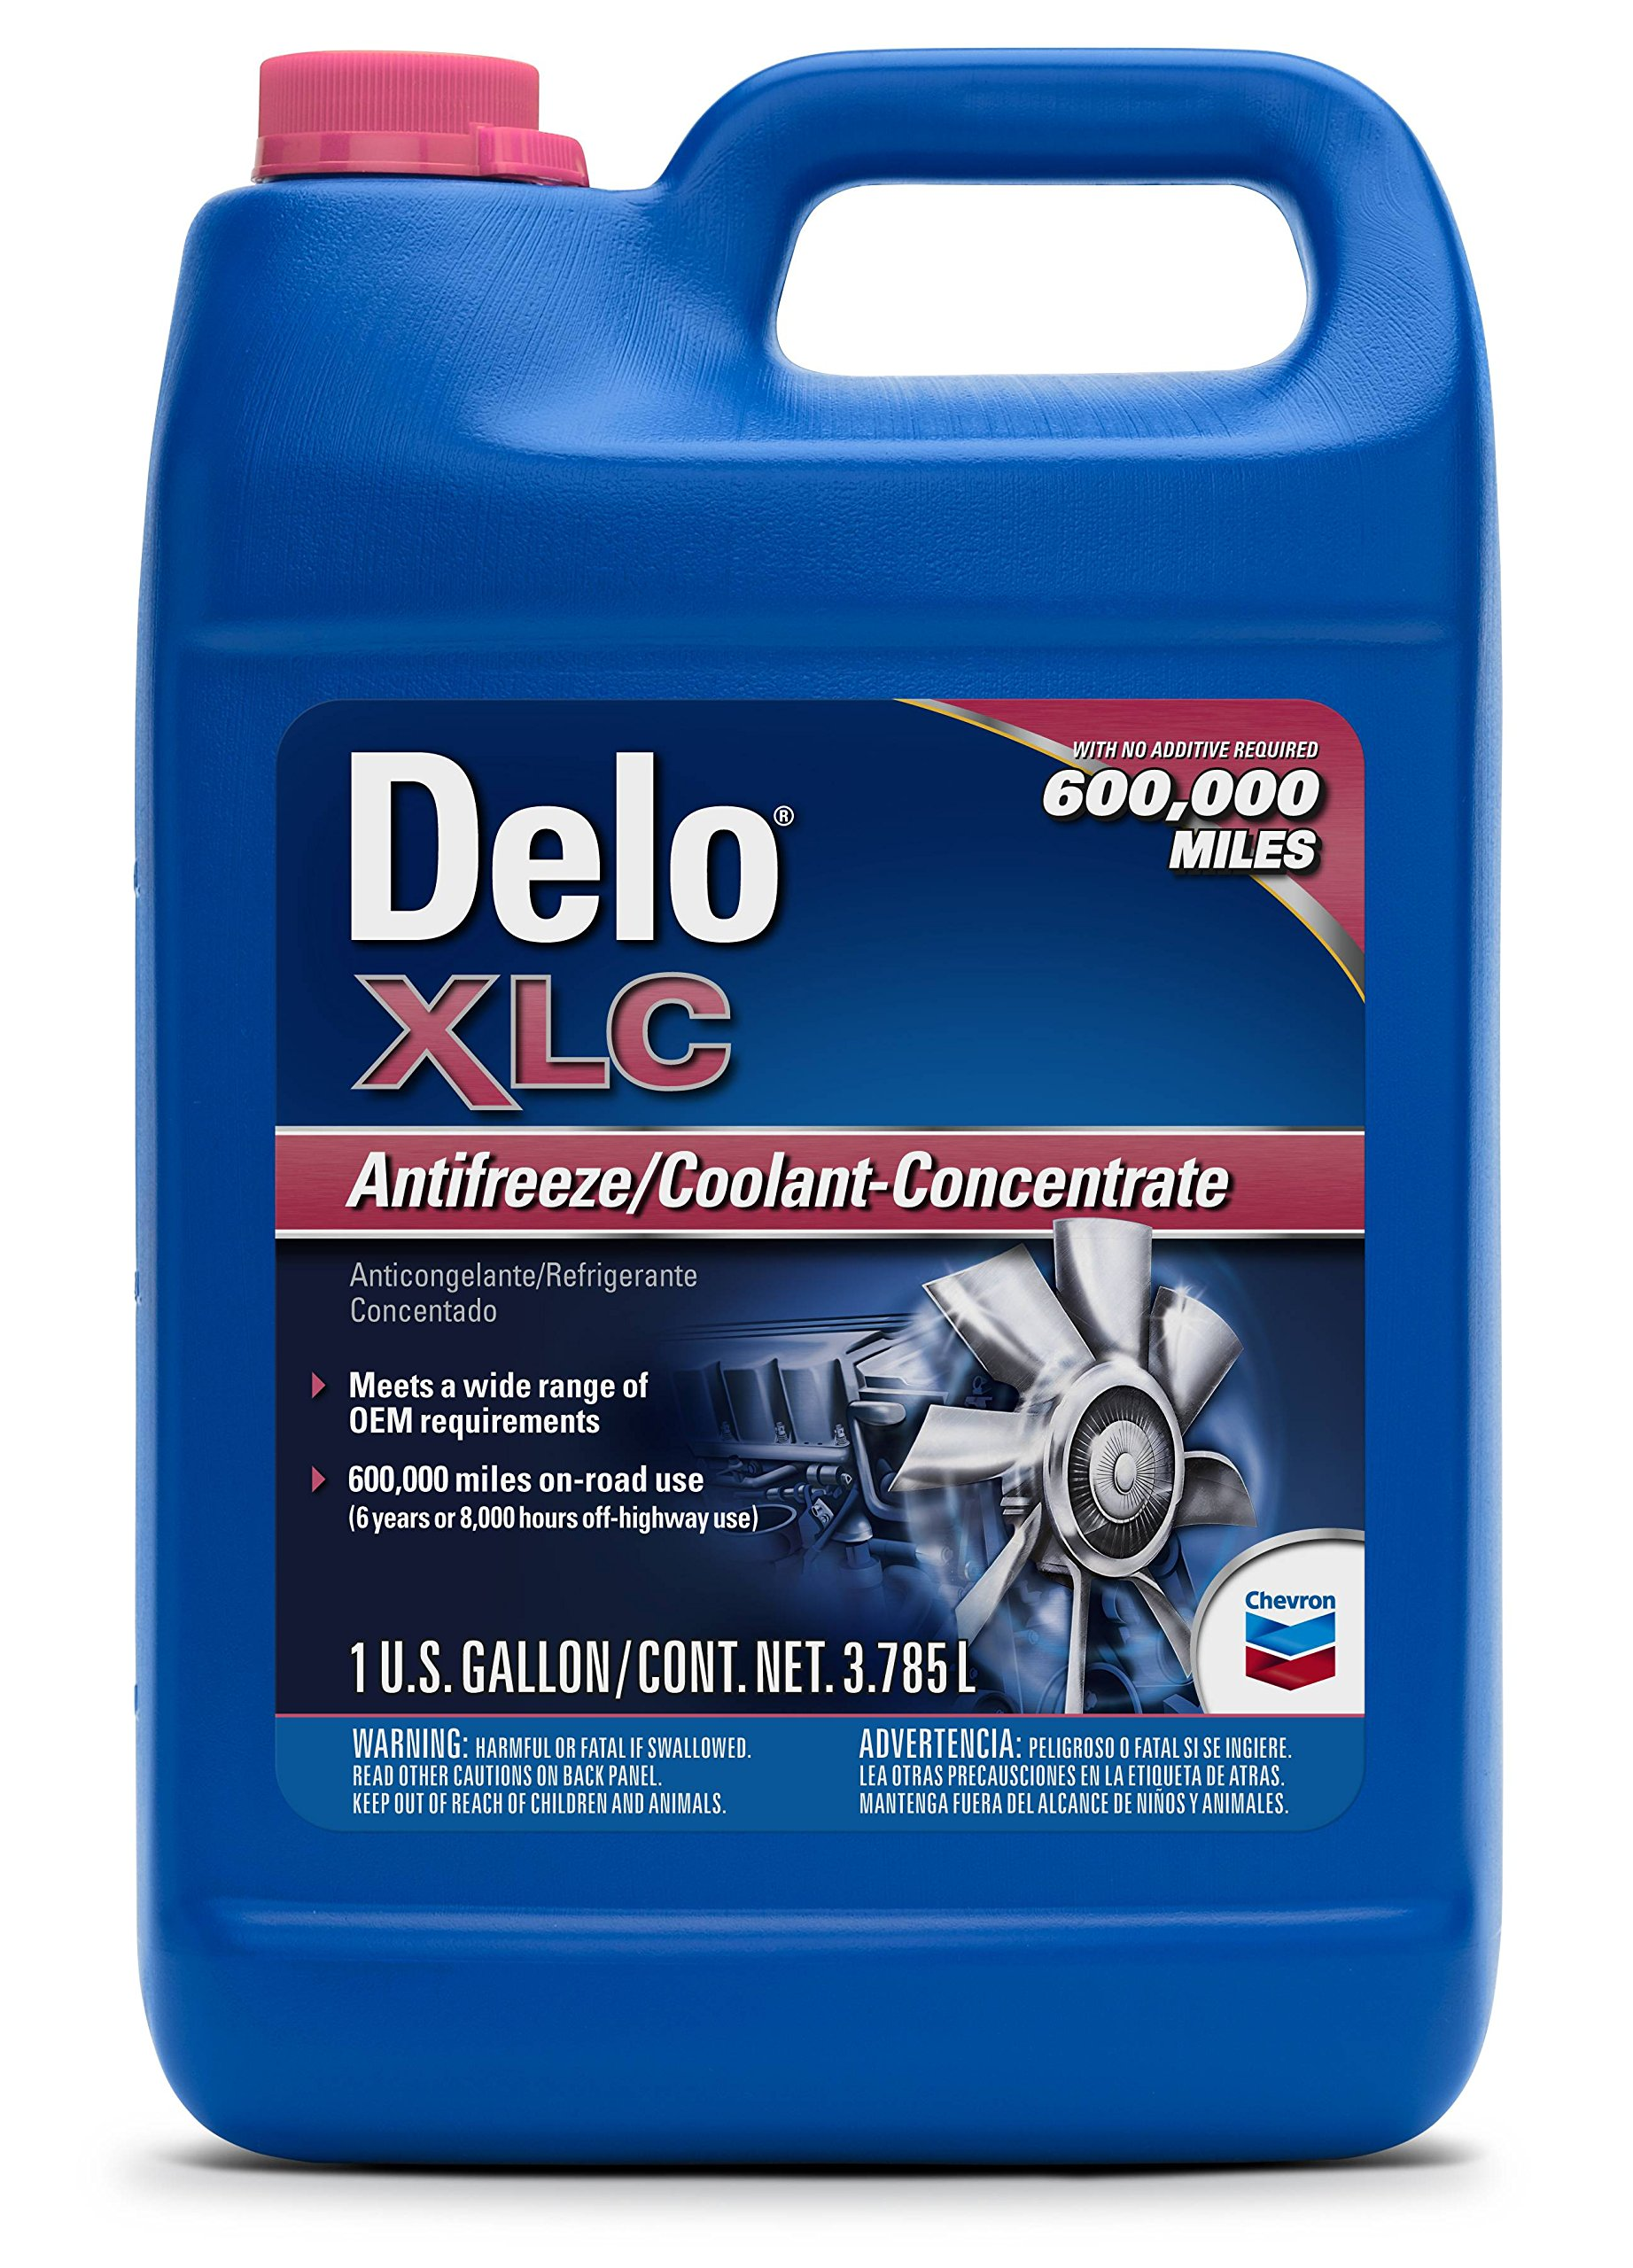 Delo XLC Nitrate Free Antifreeze/Coolant Concentrate 1 Gal. (6 Pack)